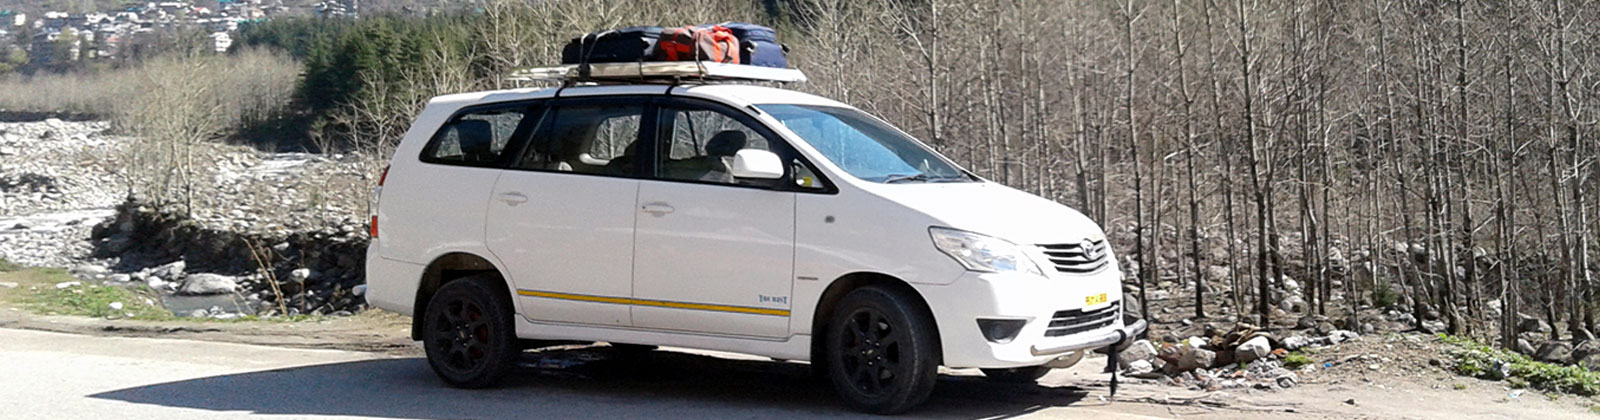 manali local taxi rates,manali local sightseeing taxi rates,manali local sightseeing taxi fare,manali taxi service reviews,local cab service in manali,manali local sightseeing bus,manali local sightseeing places